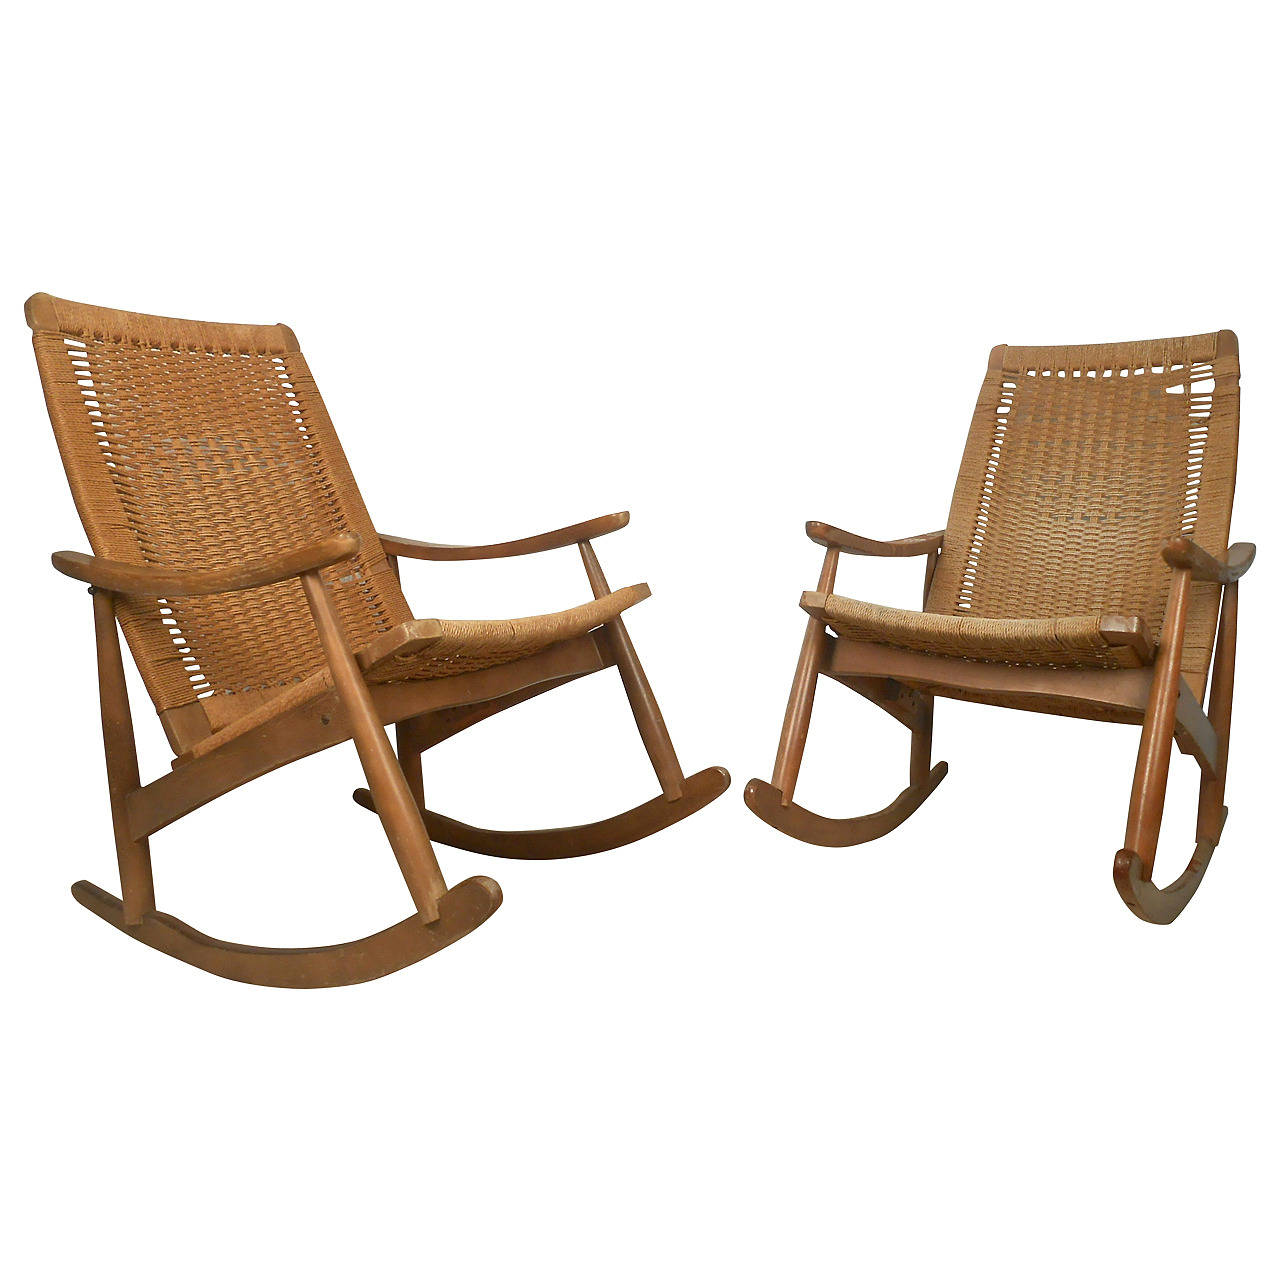 Image of: Classic Mid Century Modern Rocking Chair